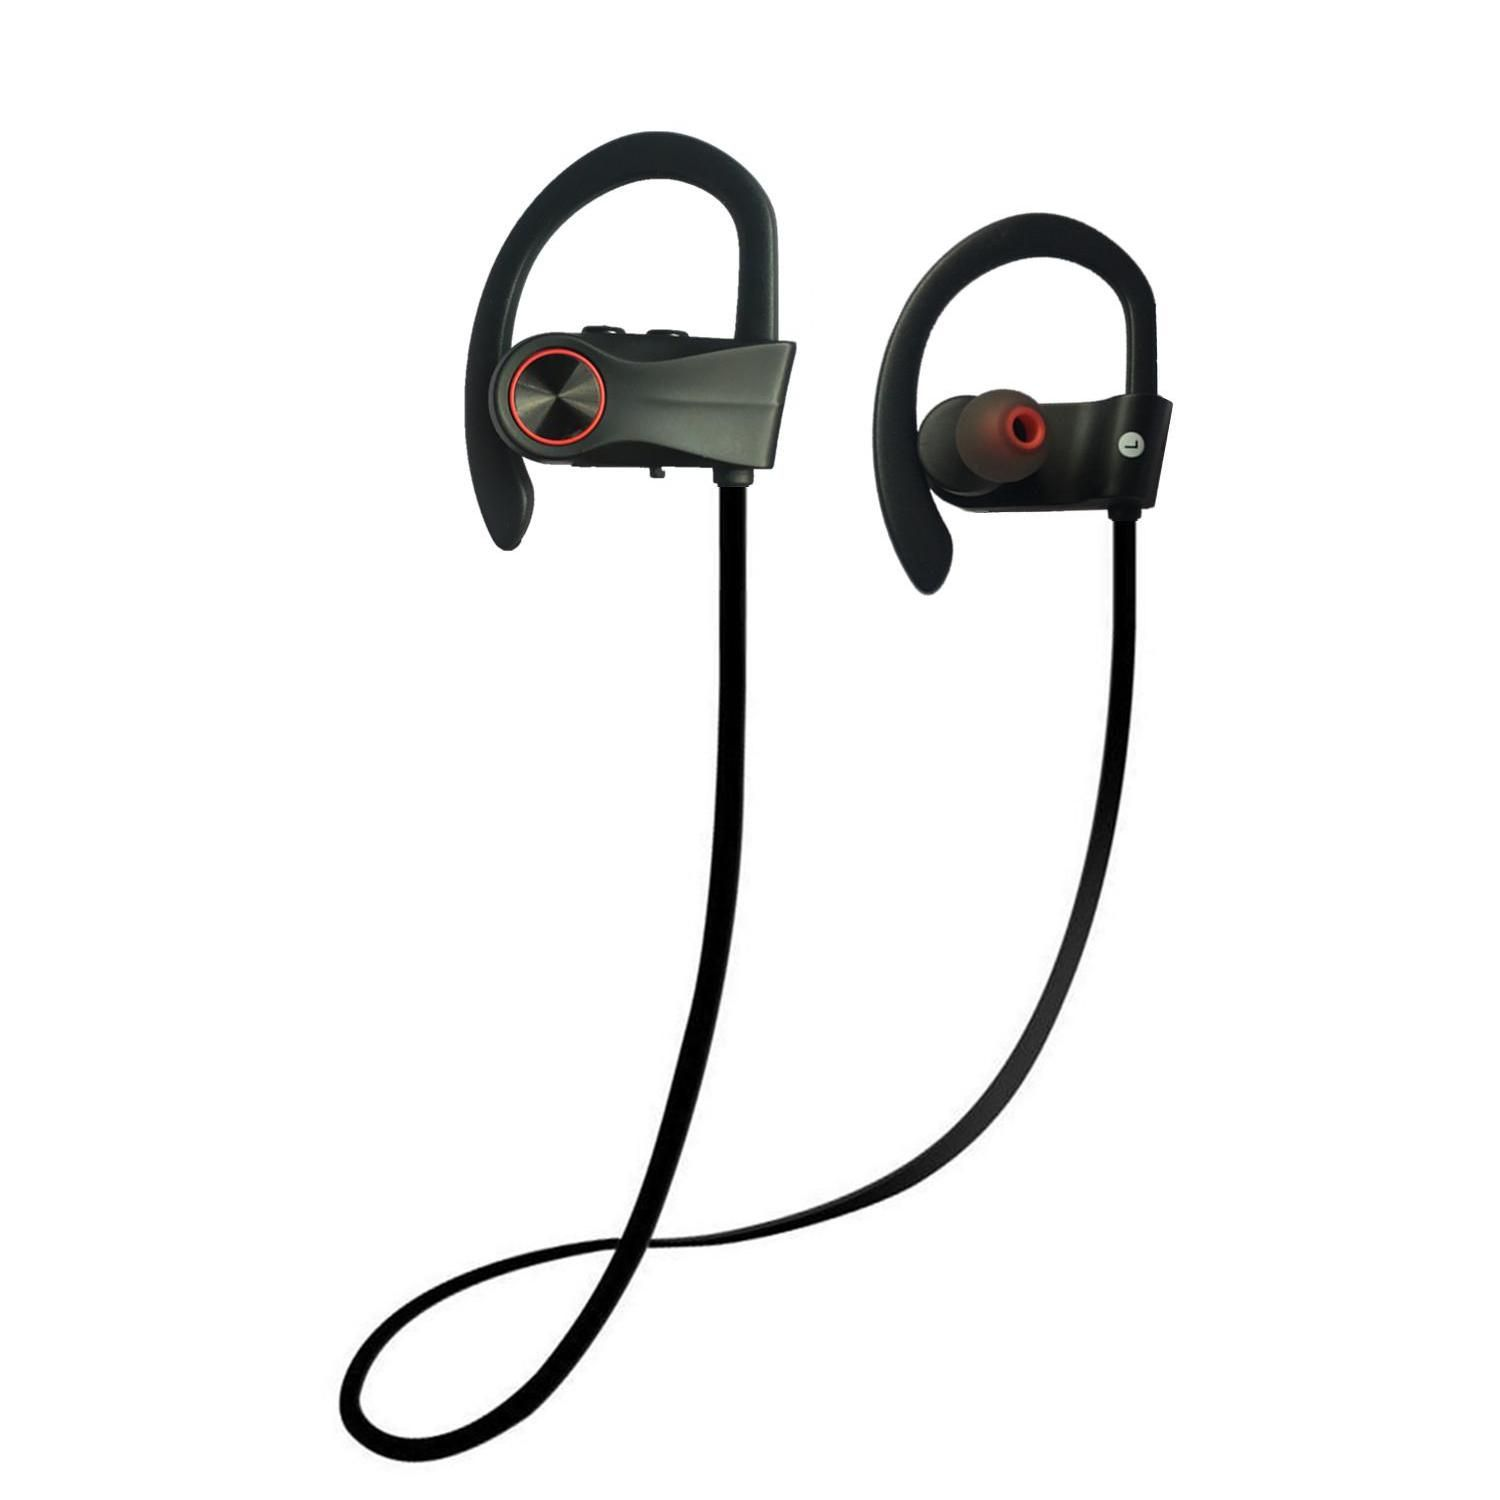 9c60b9f43bc Bluetooth Headphones, Wireless Headphones V4.1 Stereo Earphones Noise  Cancelling Earbuds Sports Sweatproof Headset